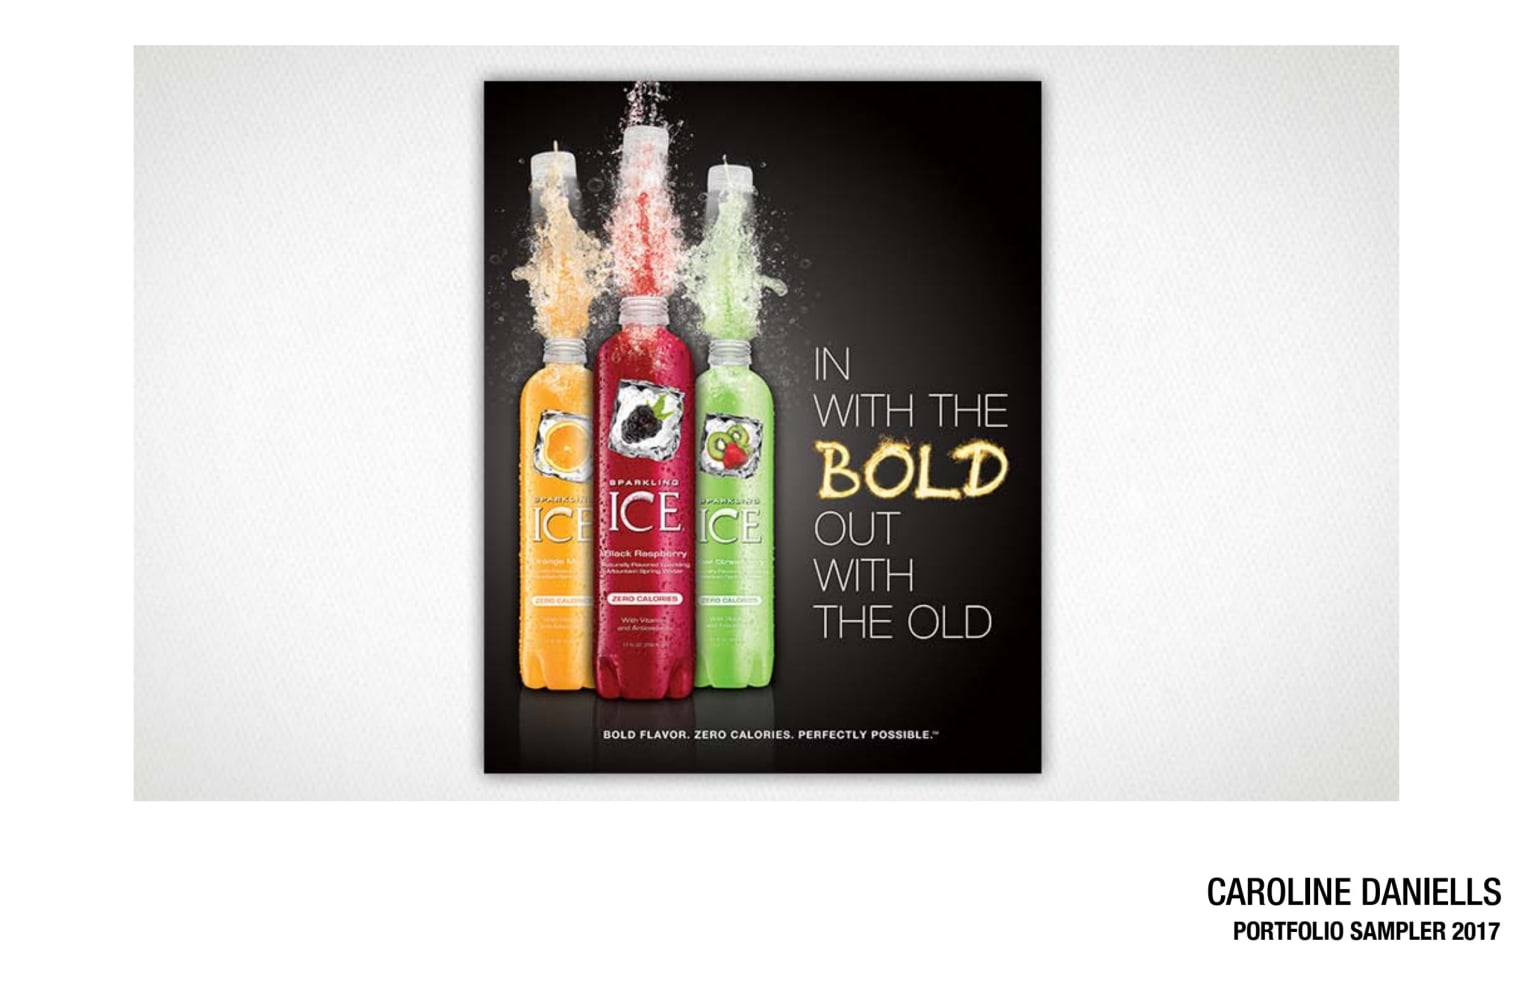 Sparkling ICE New Years Campaign